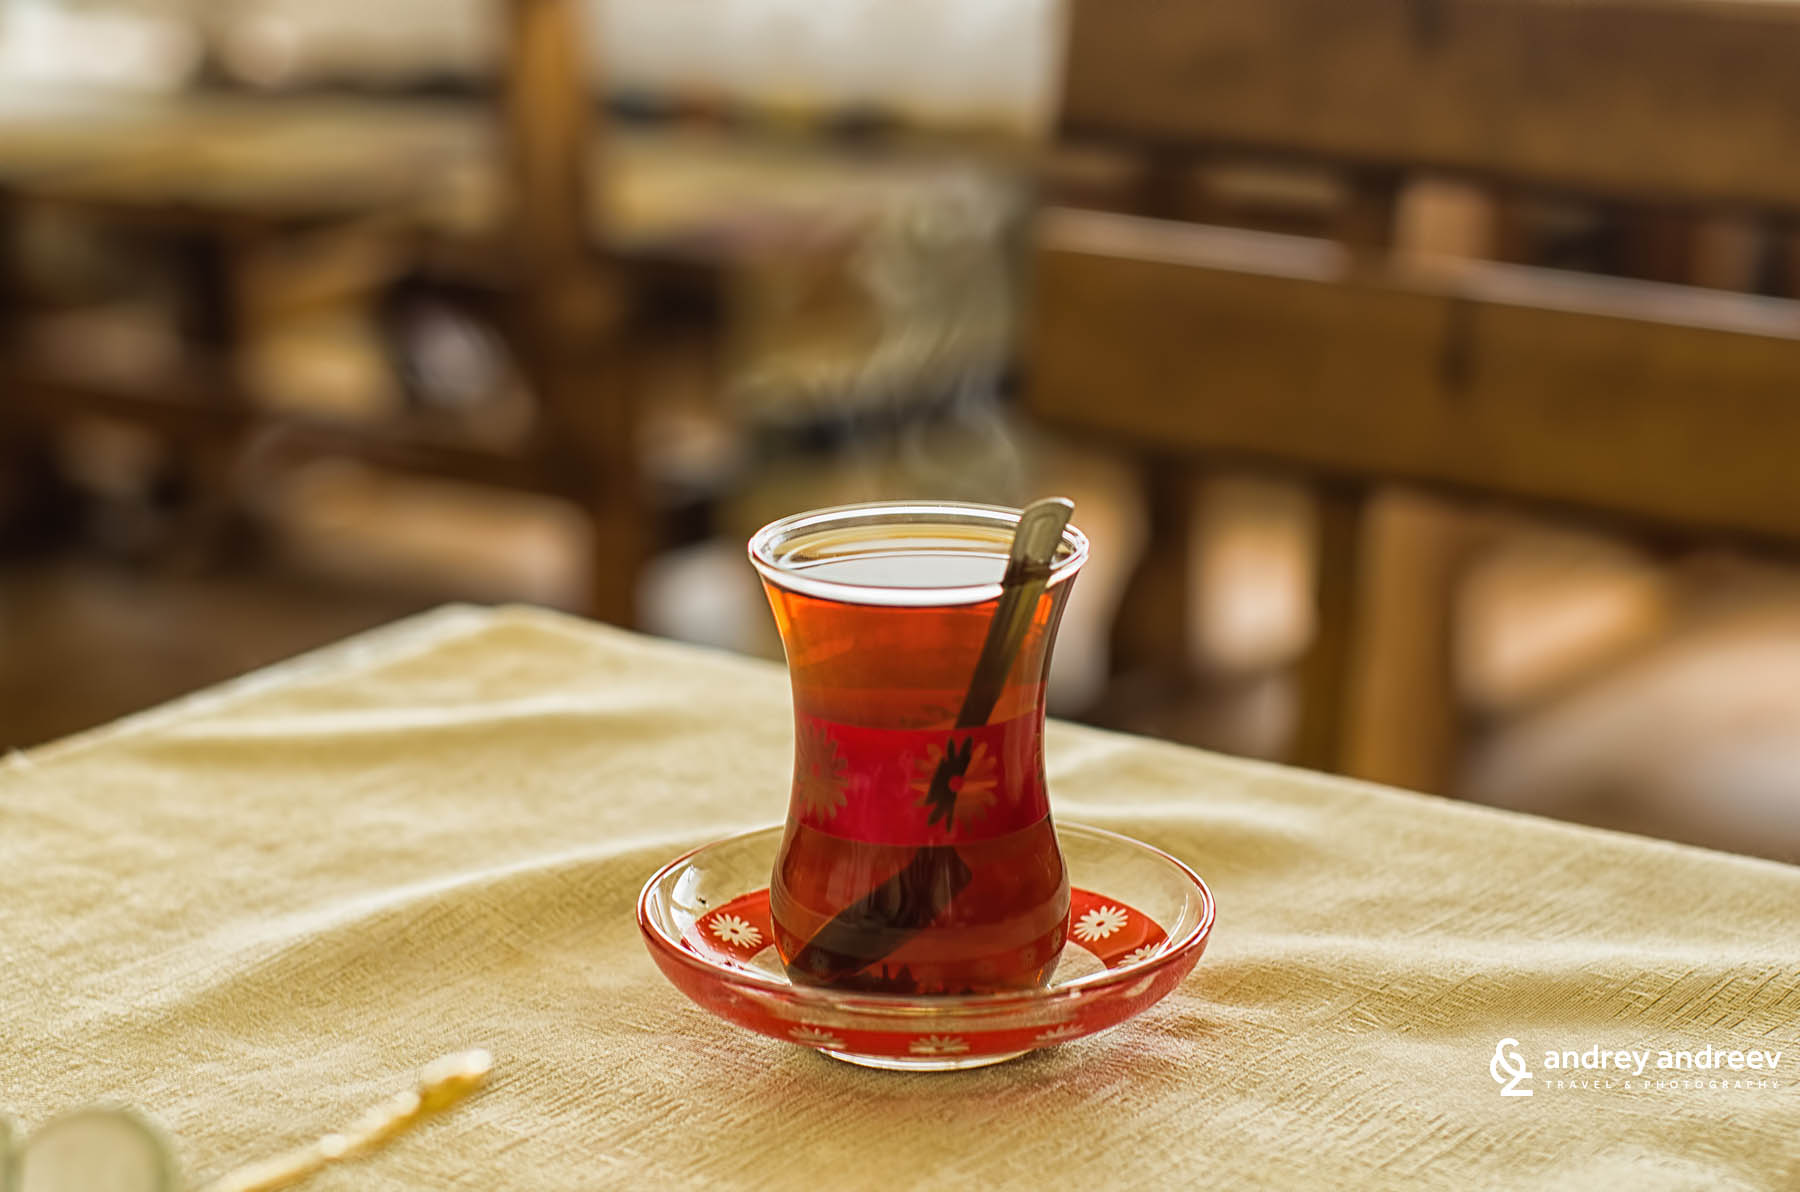 Turkish tea in typical Turkish glasses